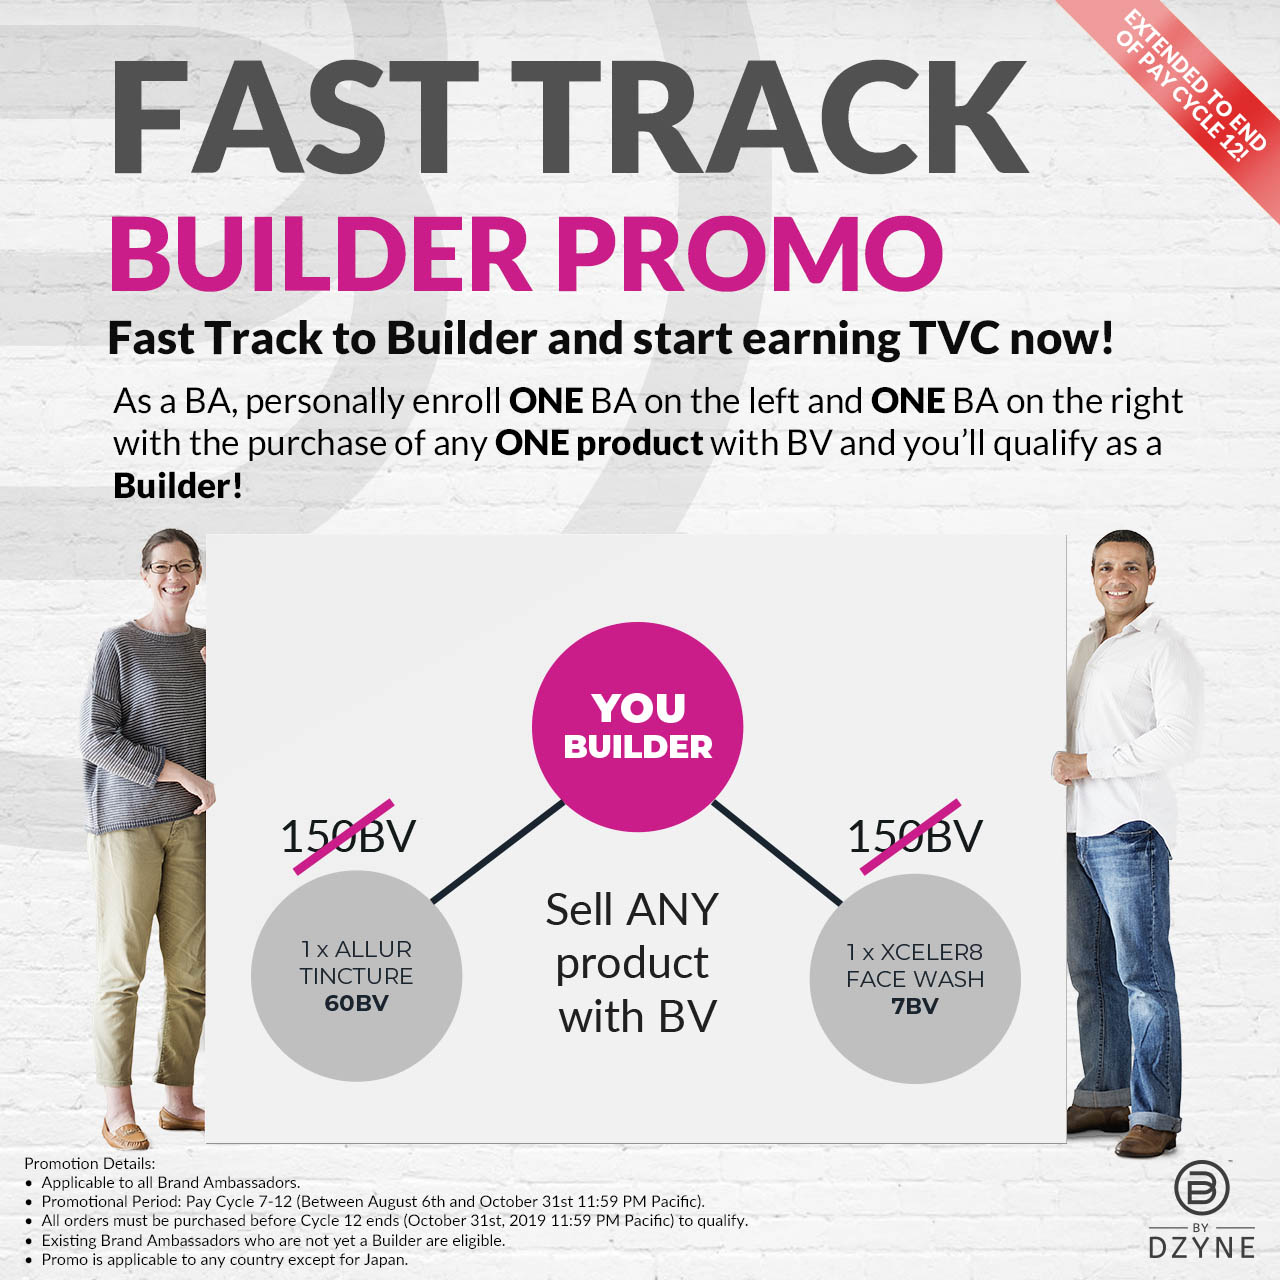 FAST TRACK BUILDER PROMO and start earning TVC now!